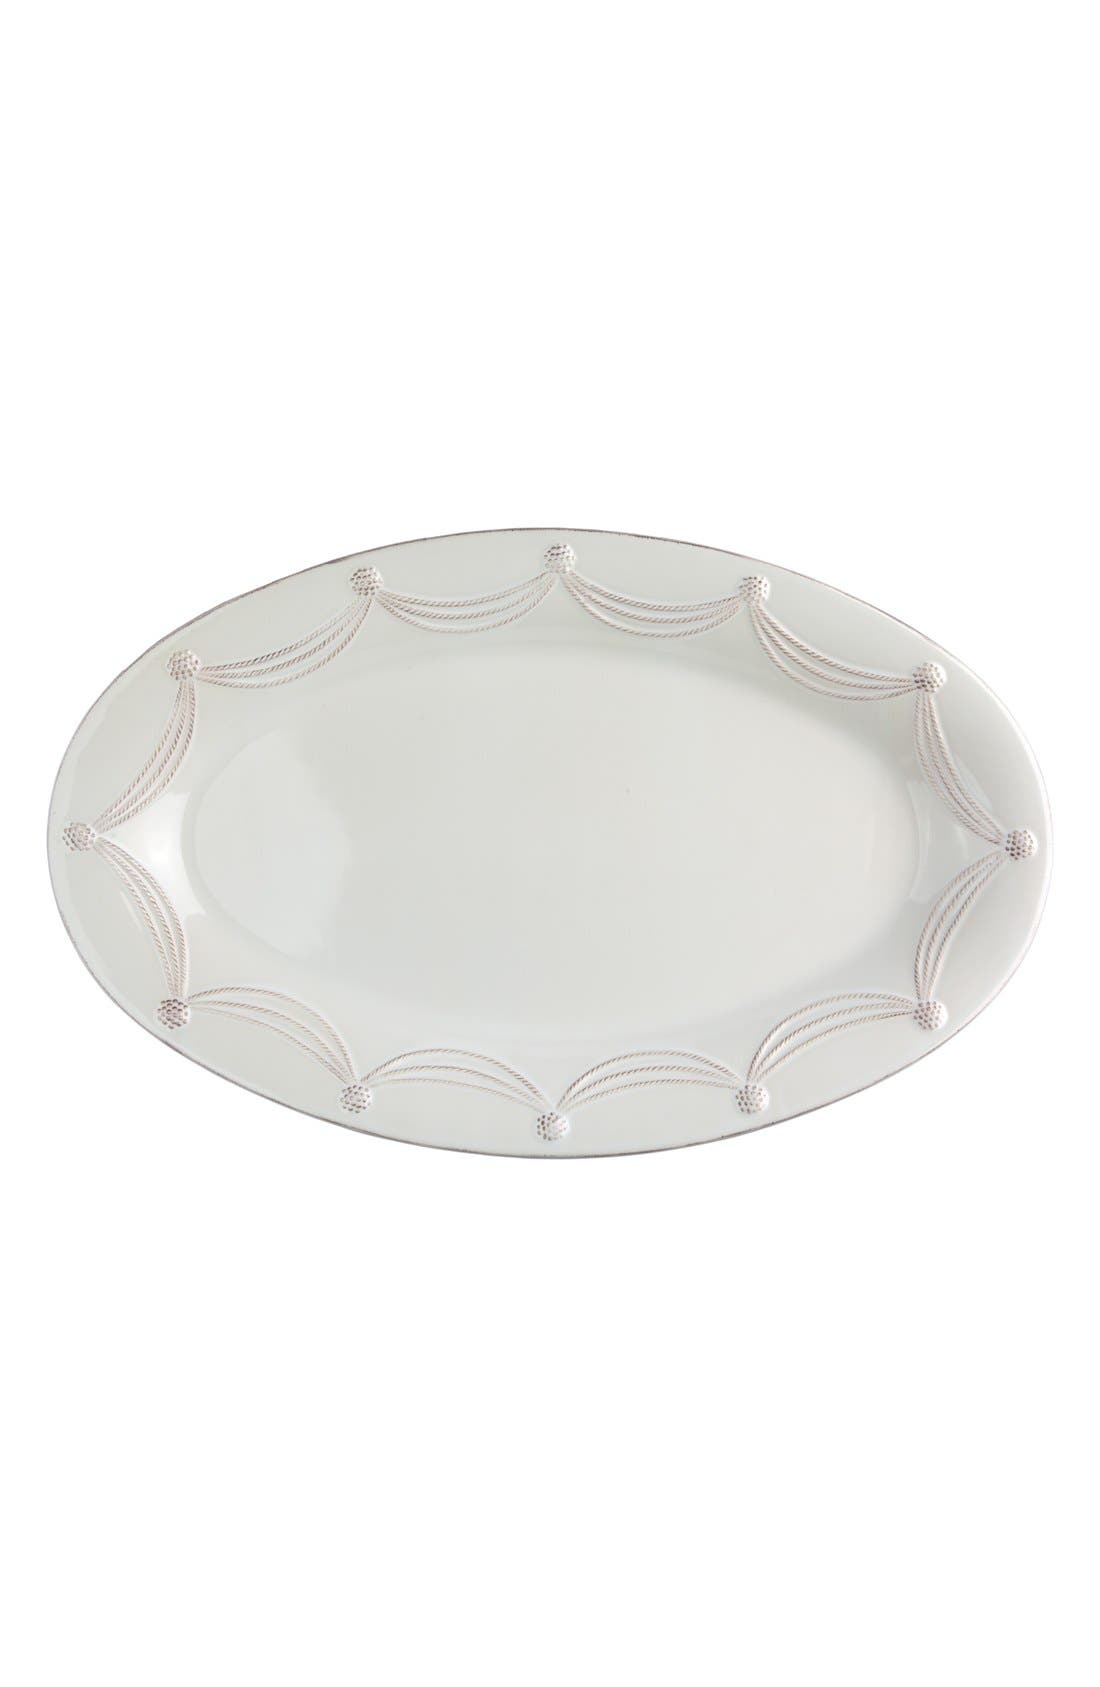 'Berry and Thread' Oval Platter,                         Main,                         color, 100